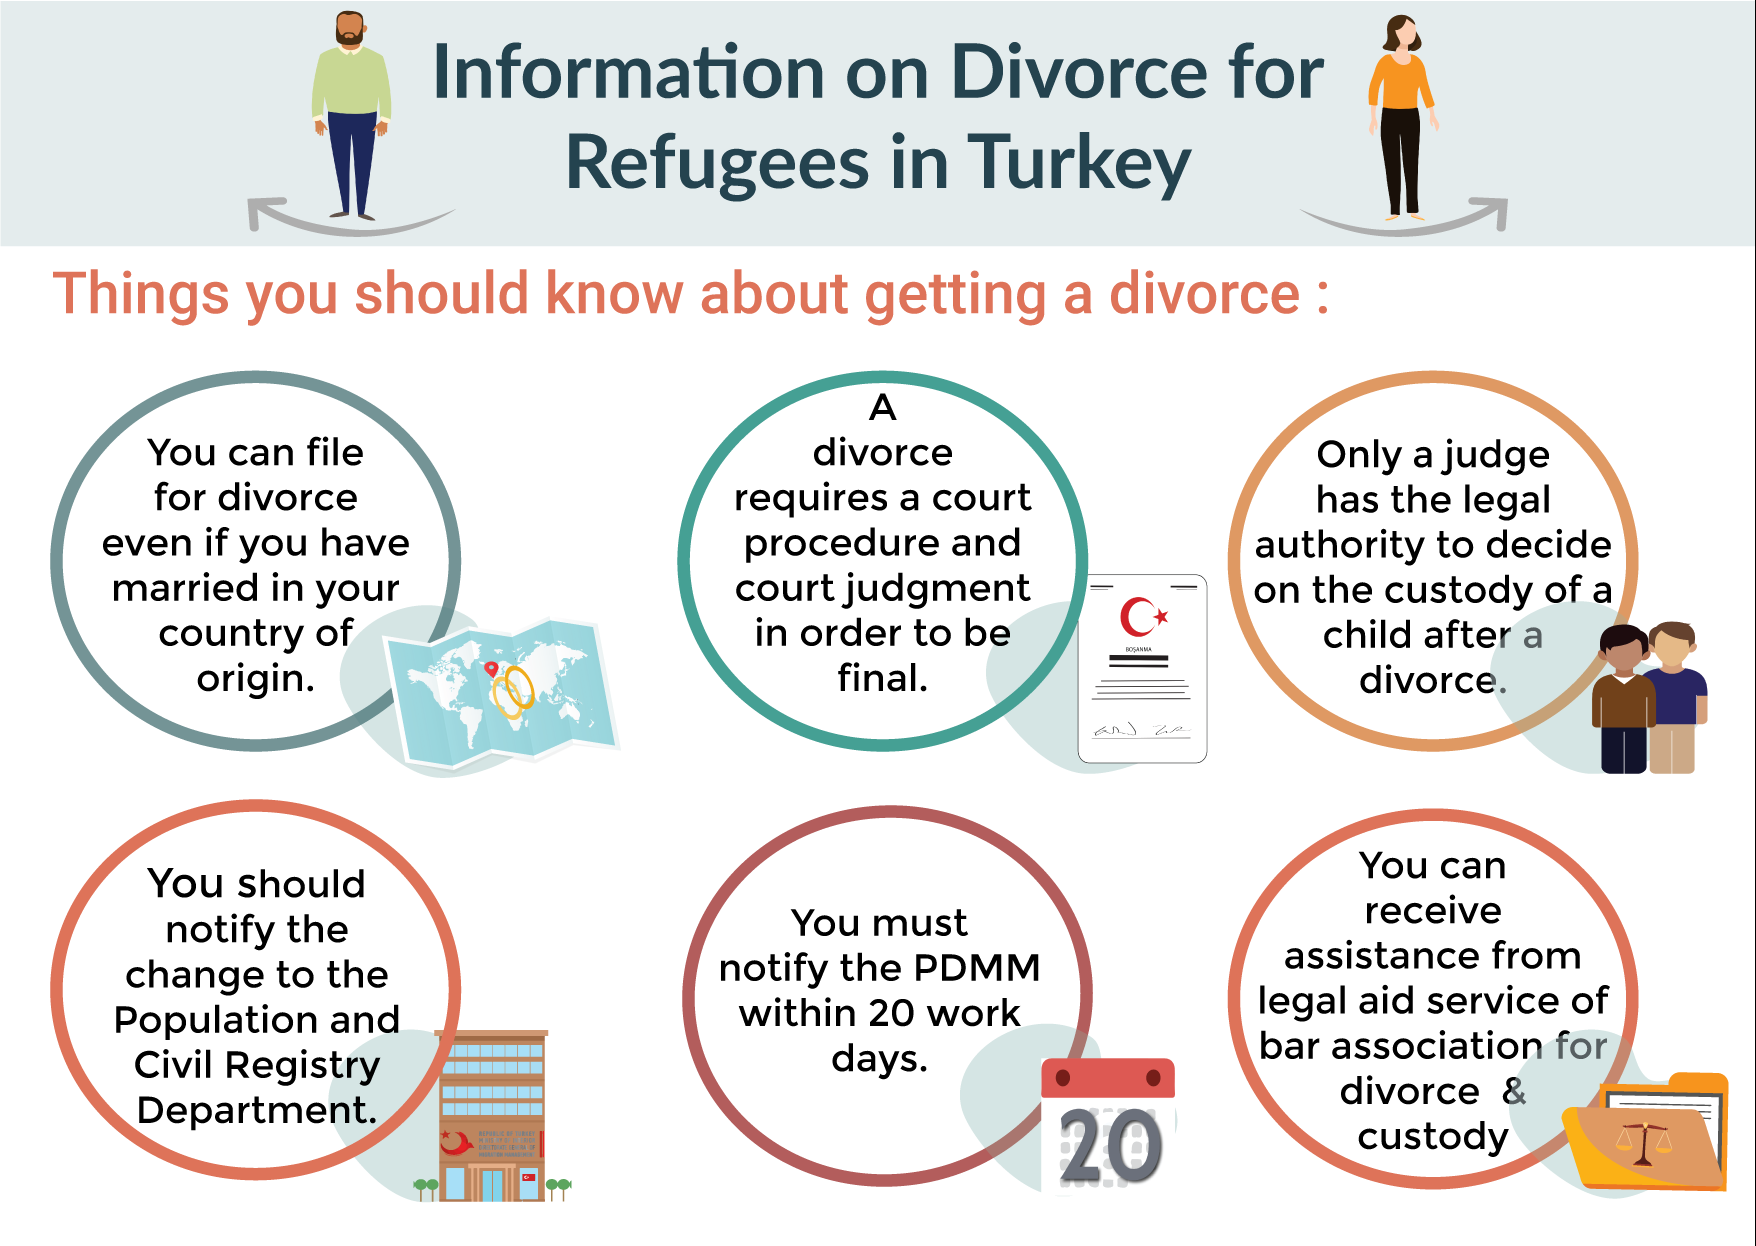 file for divorce The court procedure and court judgment custody of a child after a divorce